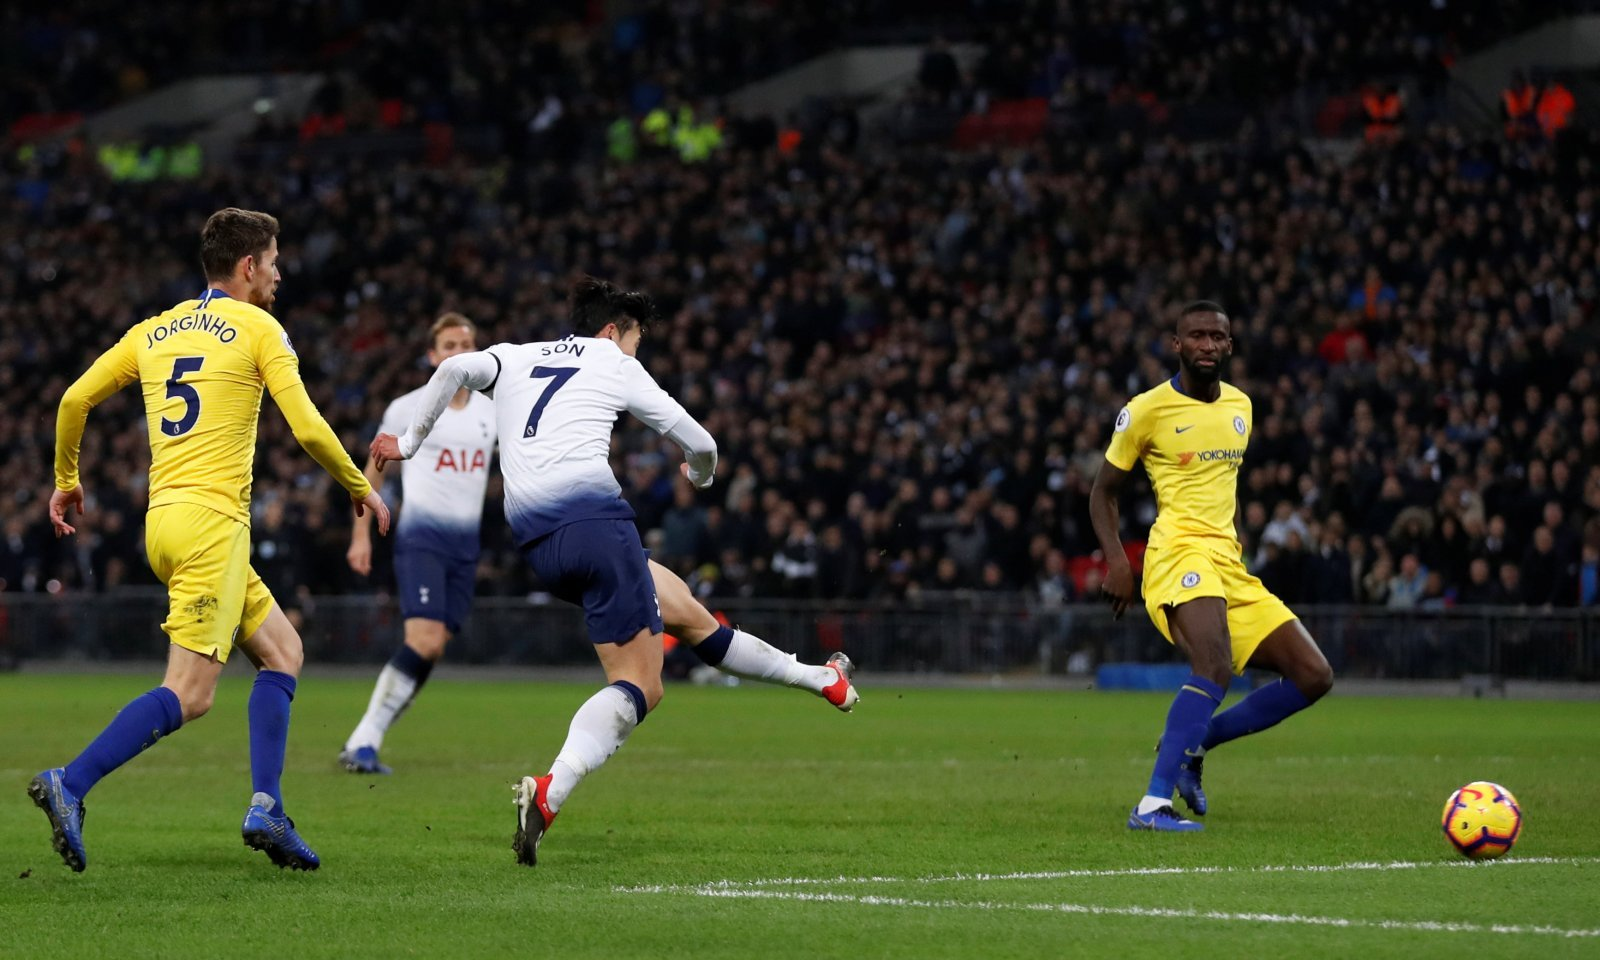 Tottenham's much-needed impending return could not be coming at a better time